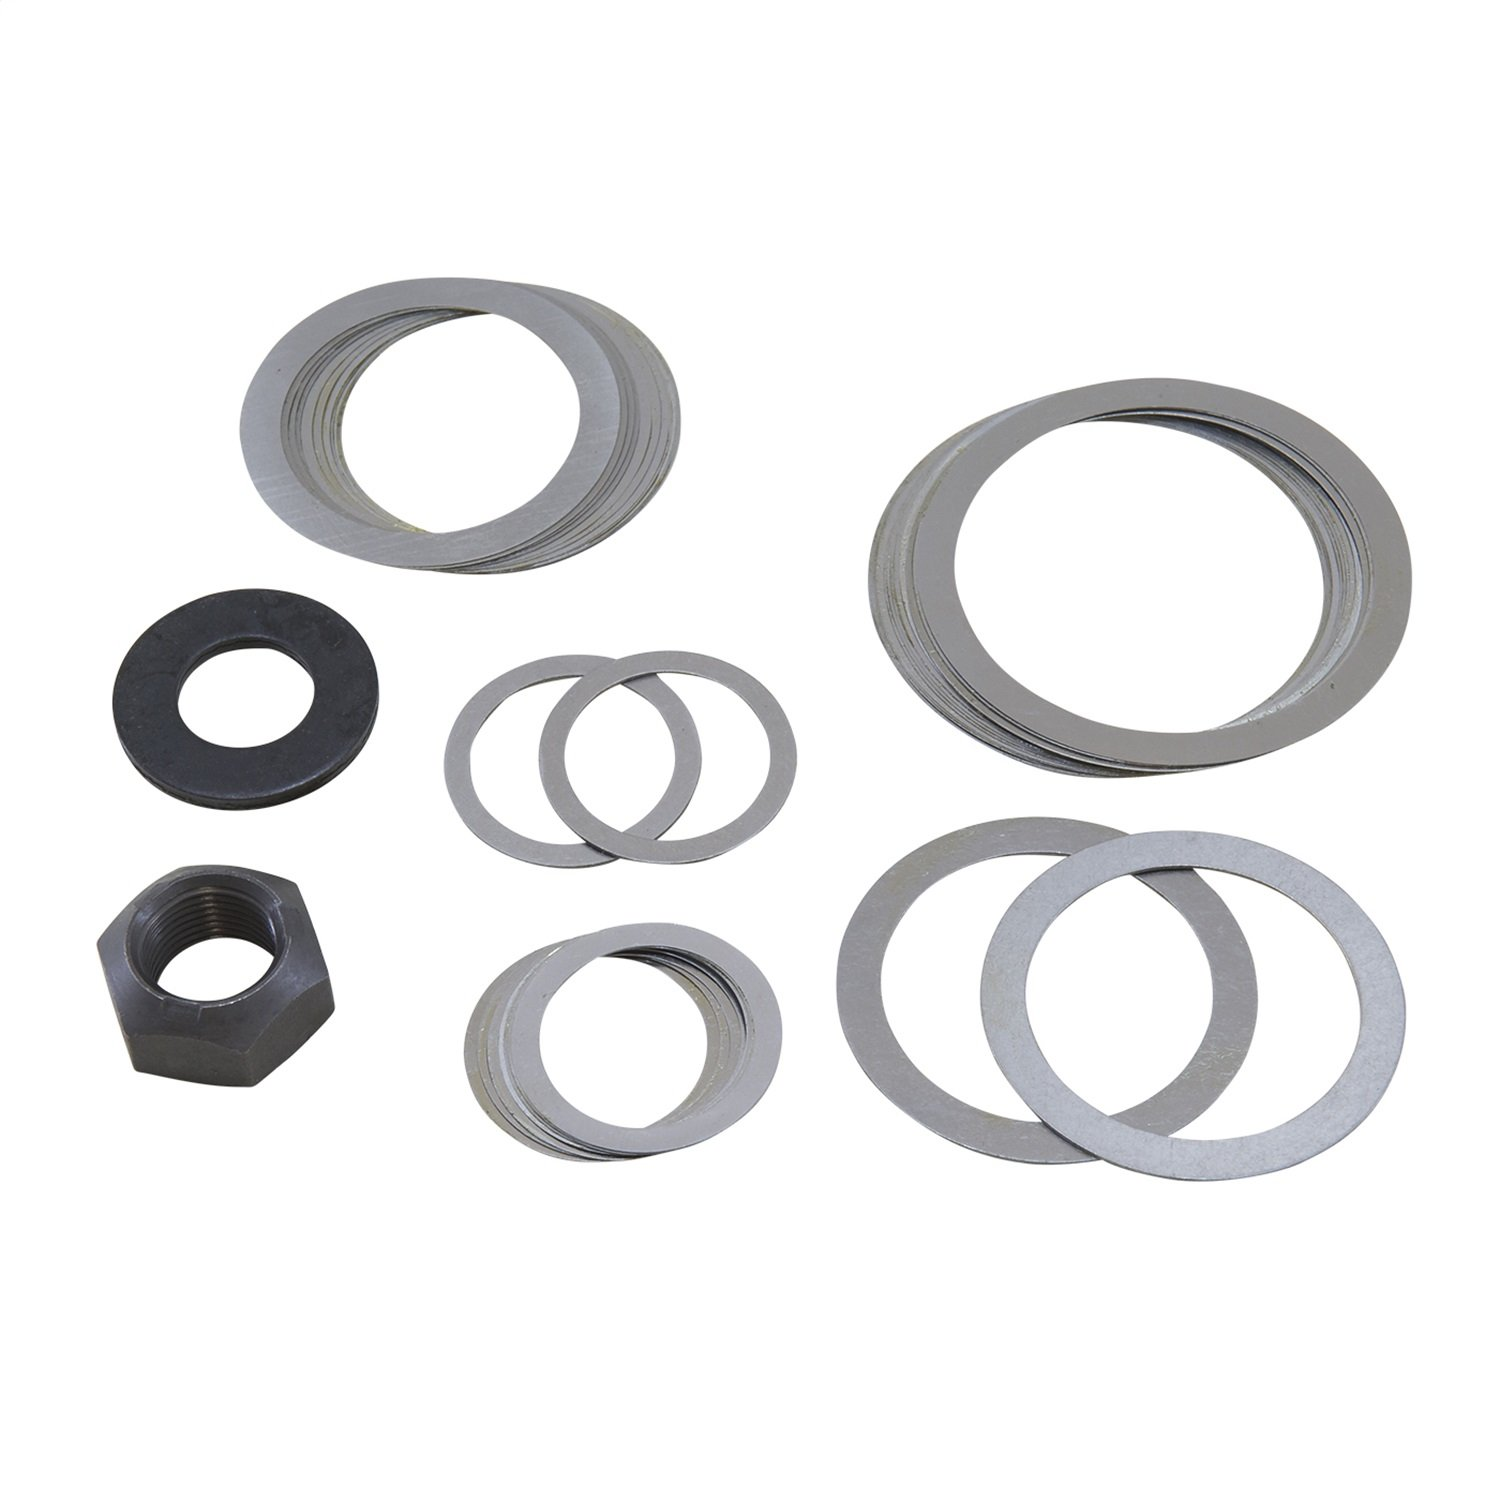 Yukon Gear & Axle (SK 706377) Replacement Complete Shim Kit for Dana 30 Front Differential